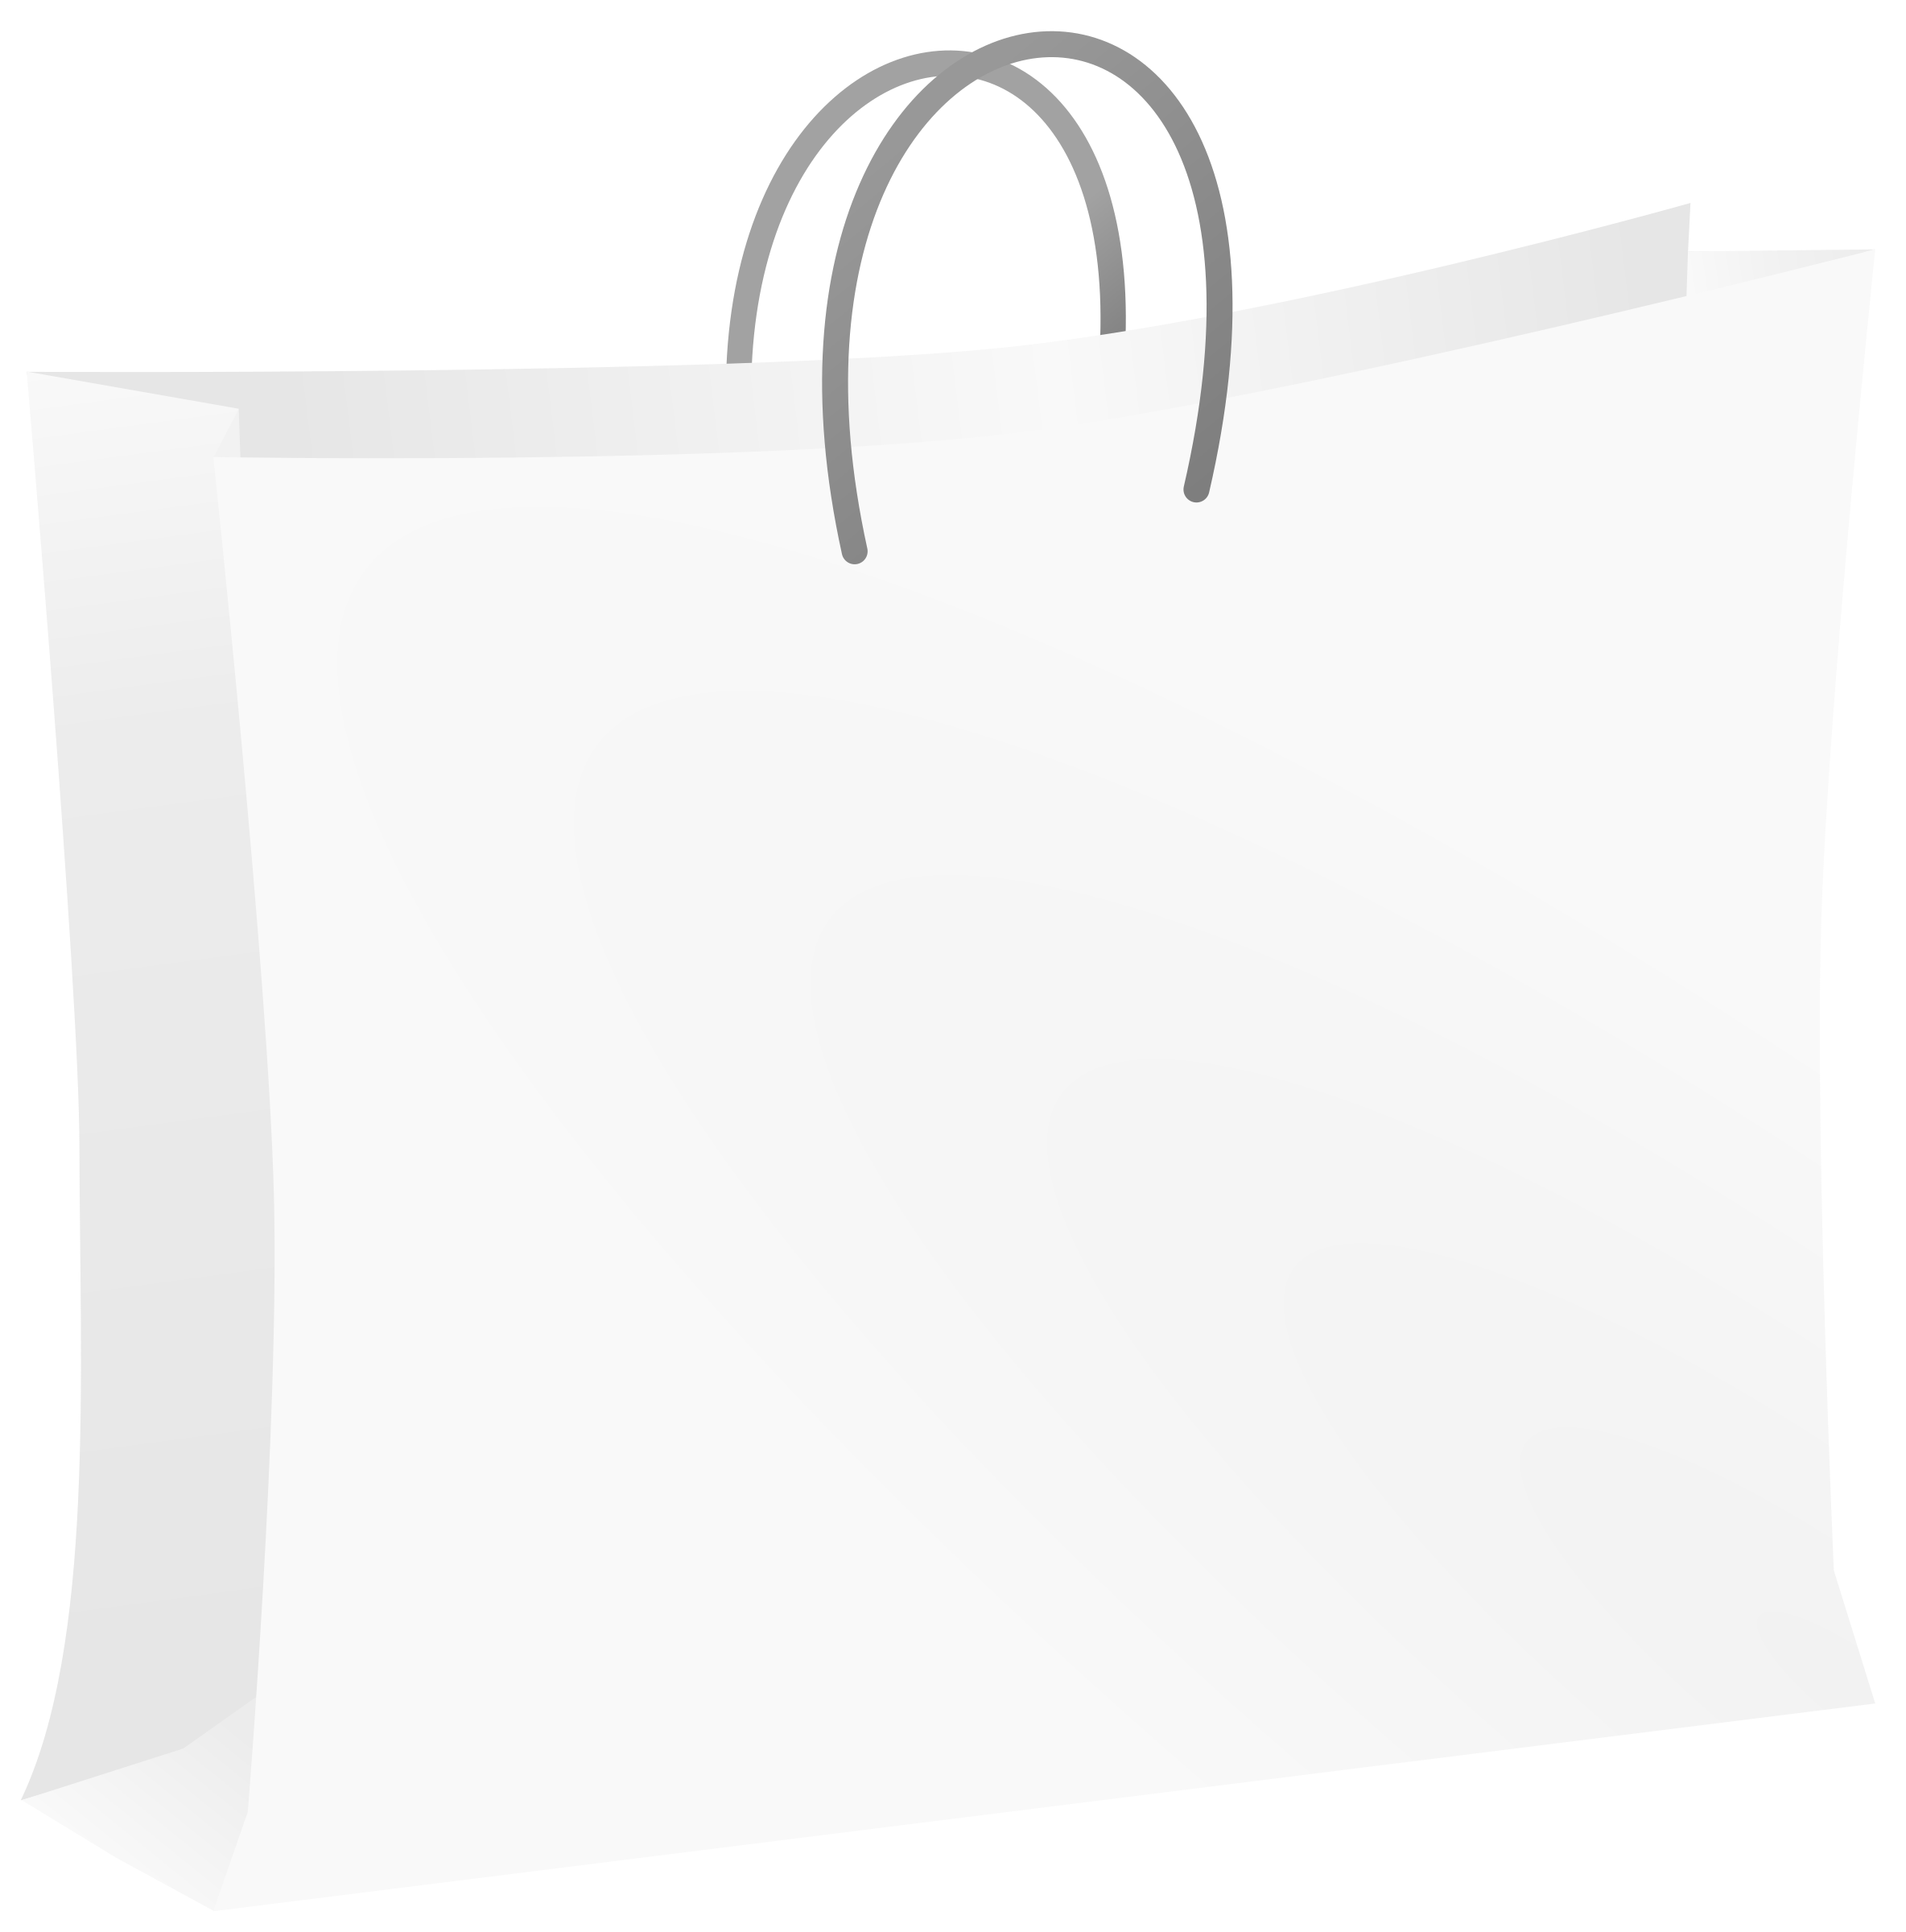 Groceries vector full shopping bag. Bags png black and